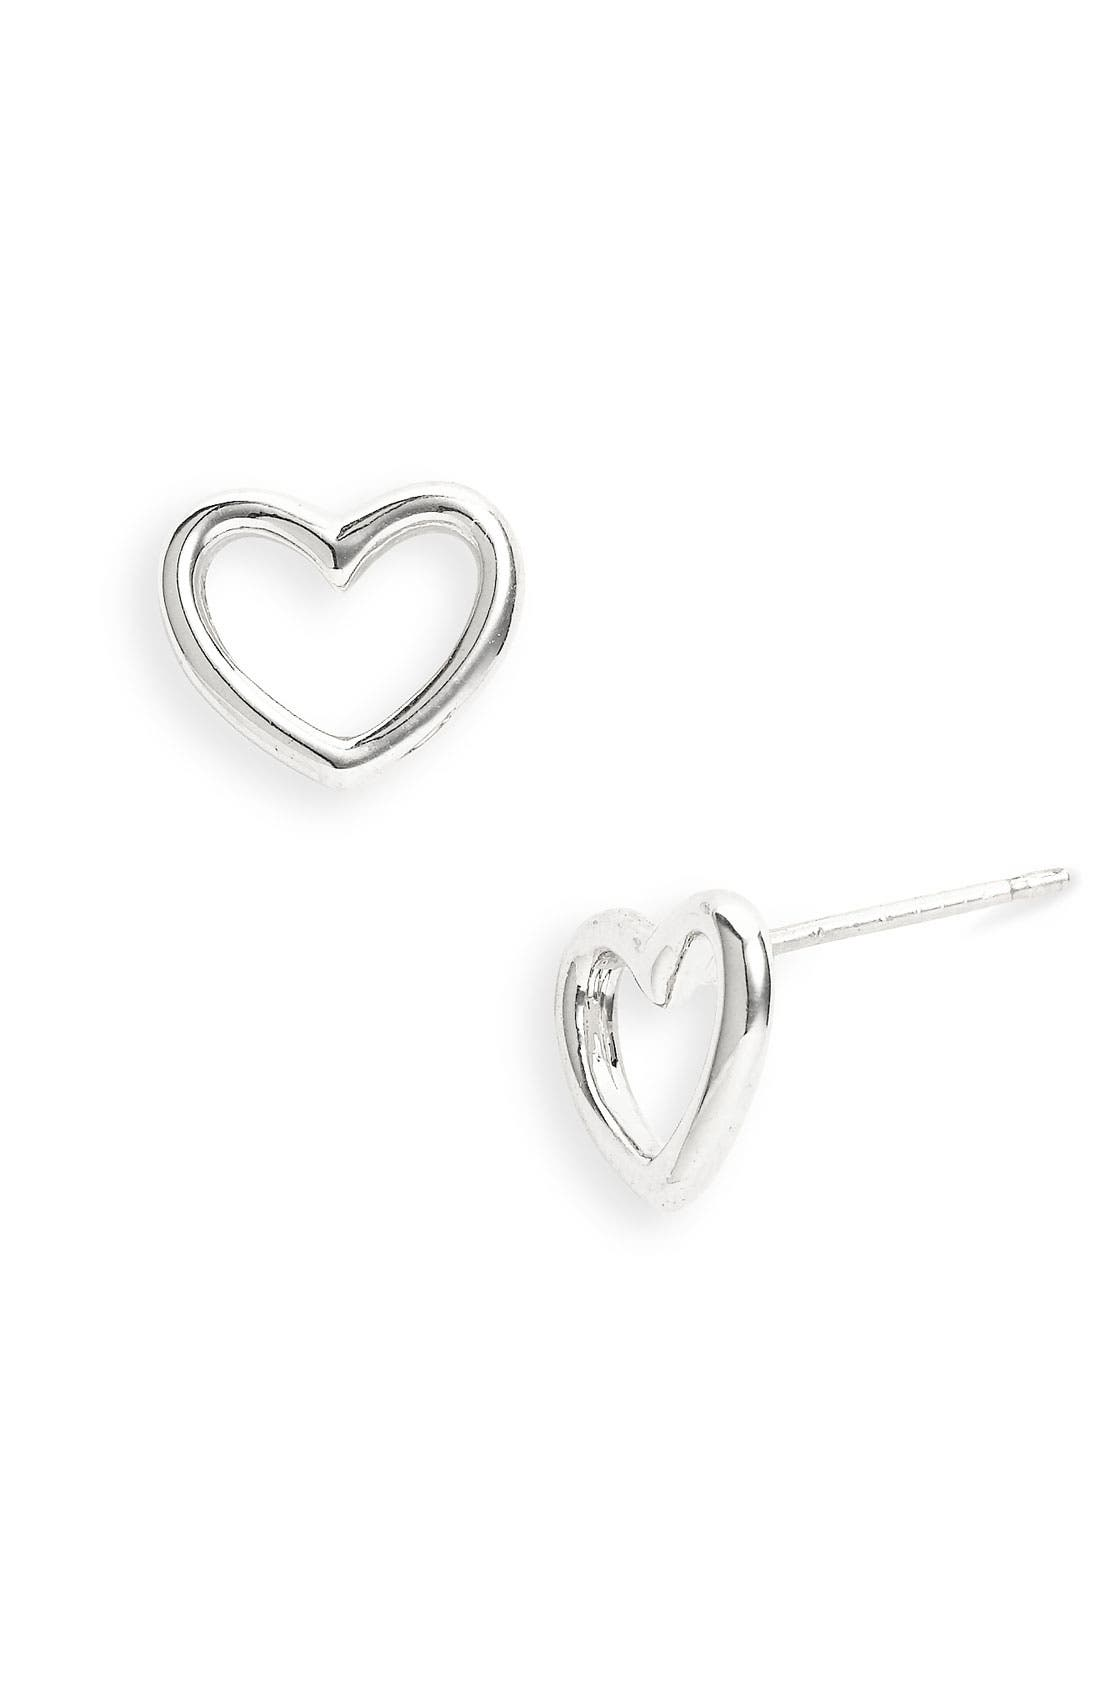 'Love Edge' Heart Stud Earrings,                             Main thumbnail 1, color,                             040